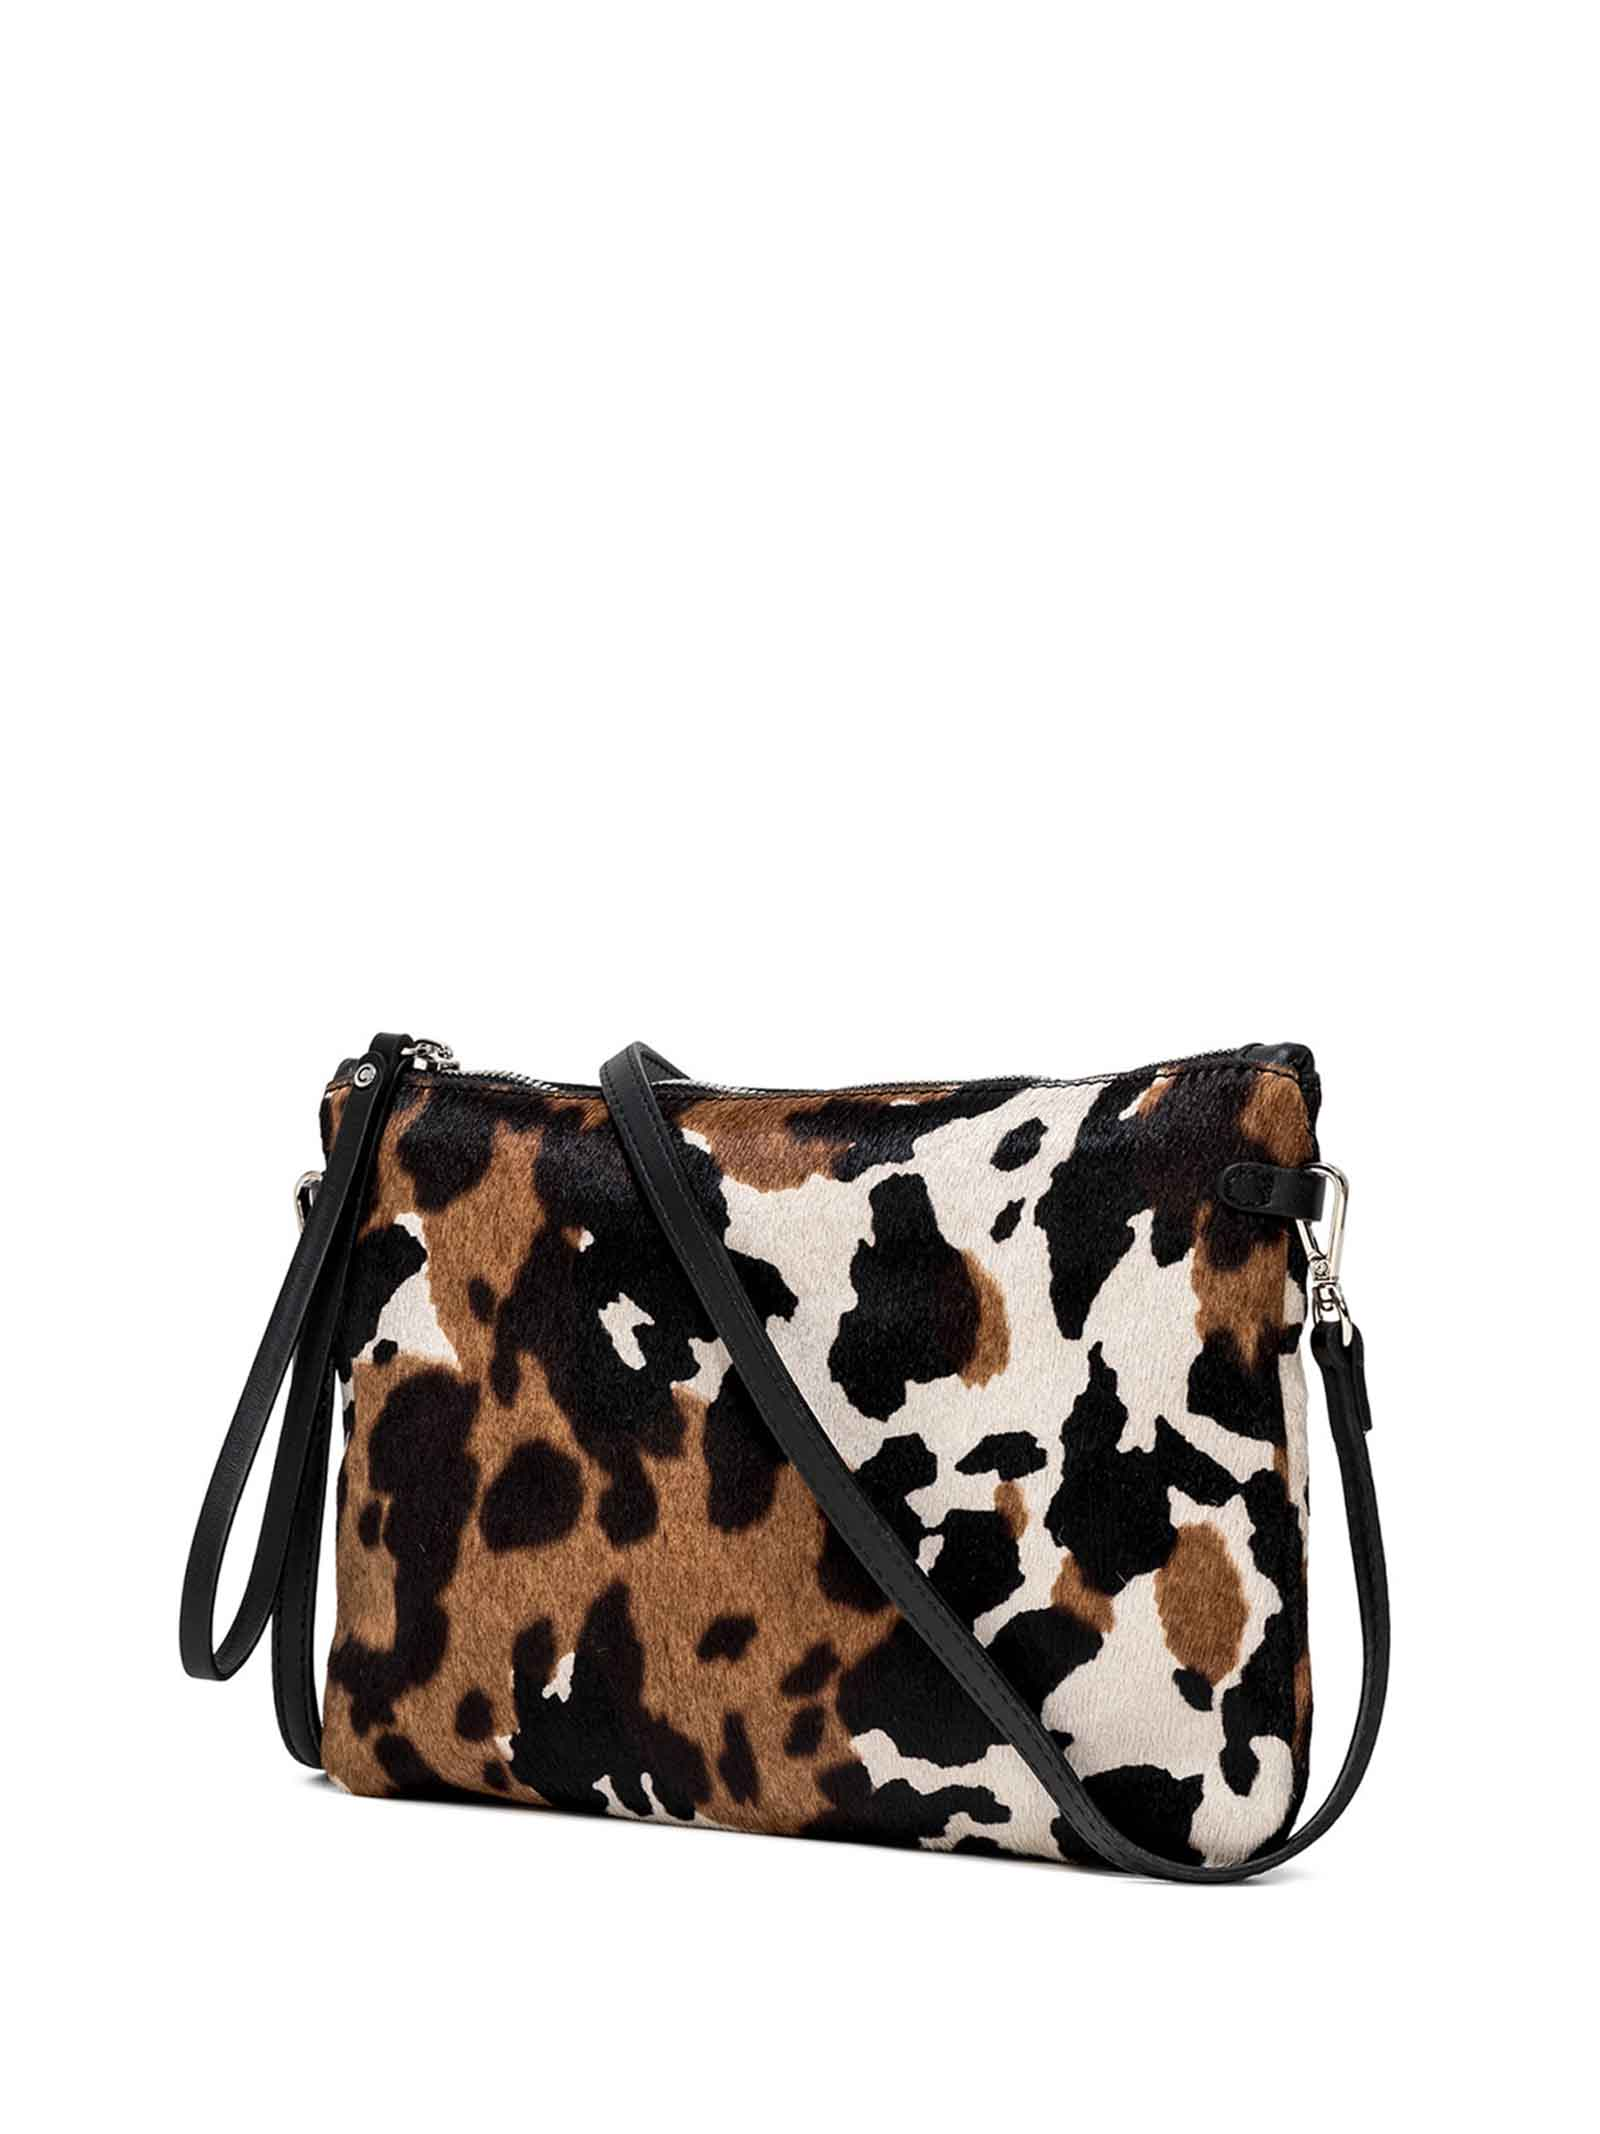 Women's Clutch Bag Maxi Hermy Pony Skin with Black Leather Inserts With Handle And Cross-body Strap Adjustable And Detachable Gianni Chiarini | Bags and backpacks | BS369512181